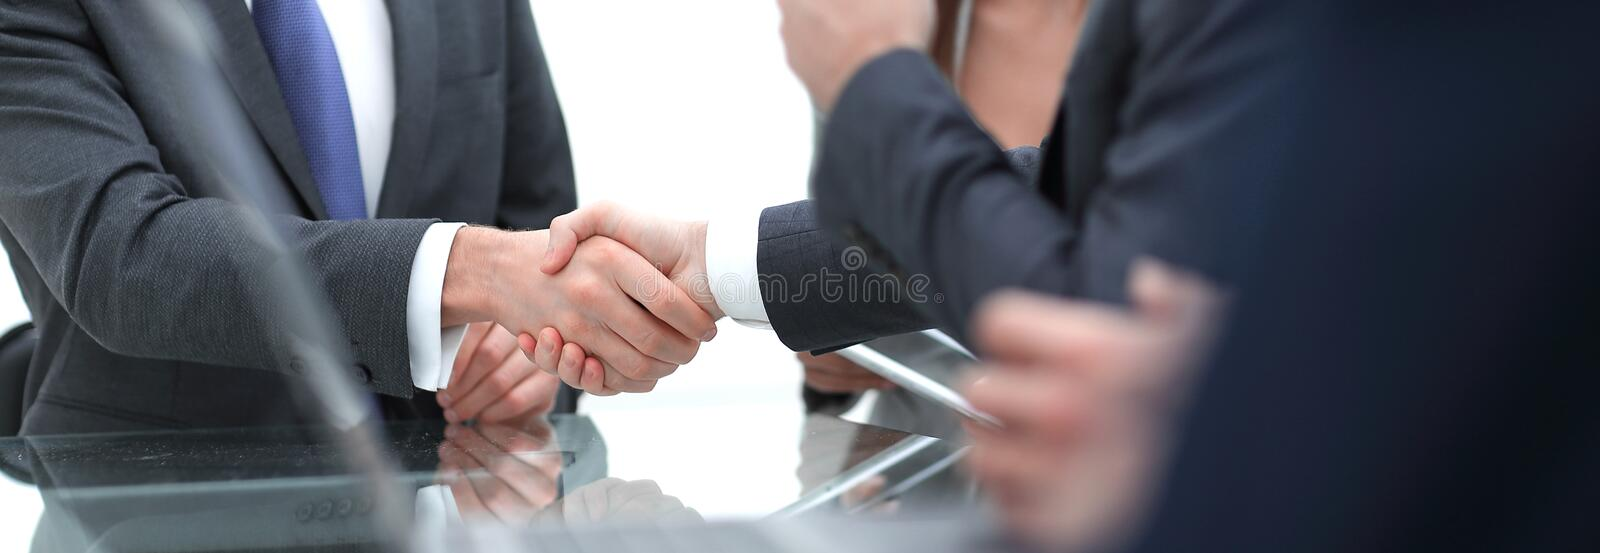 Close-up of business handshake.panoramic photo stock photography